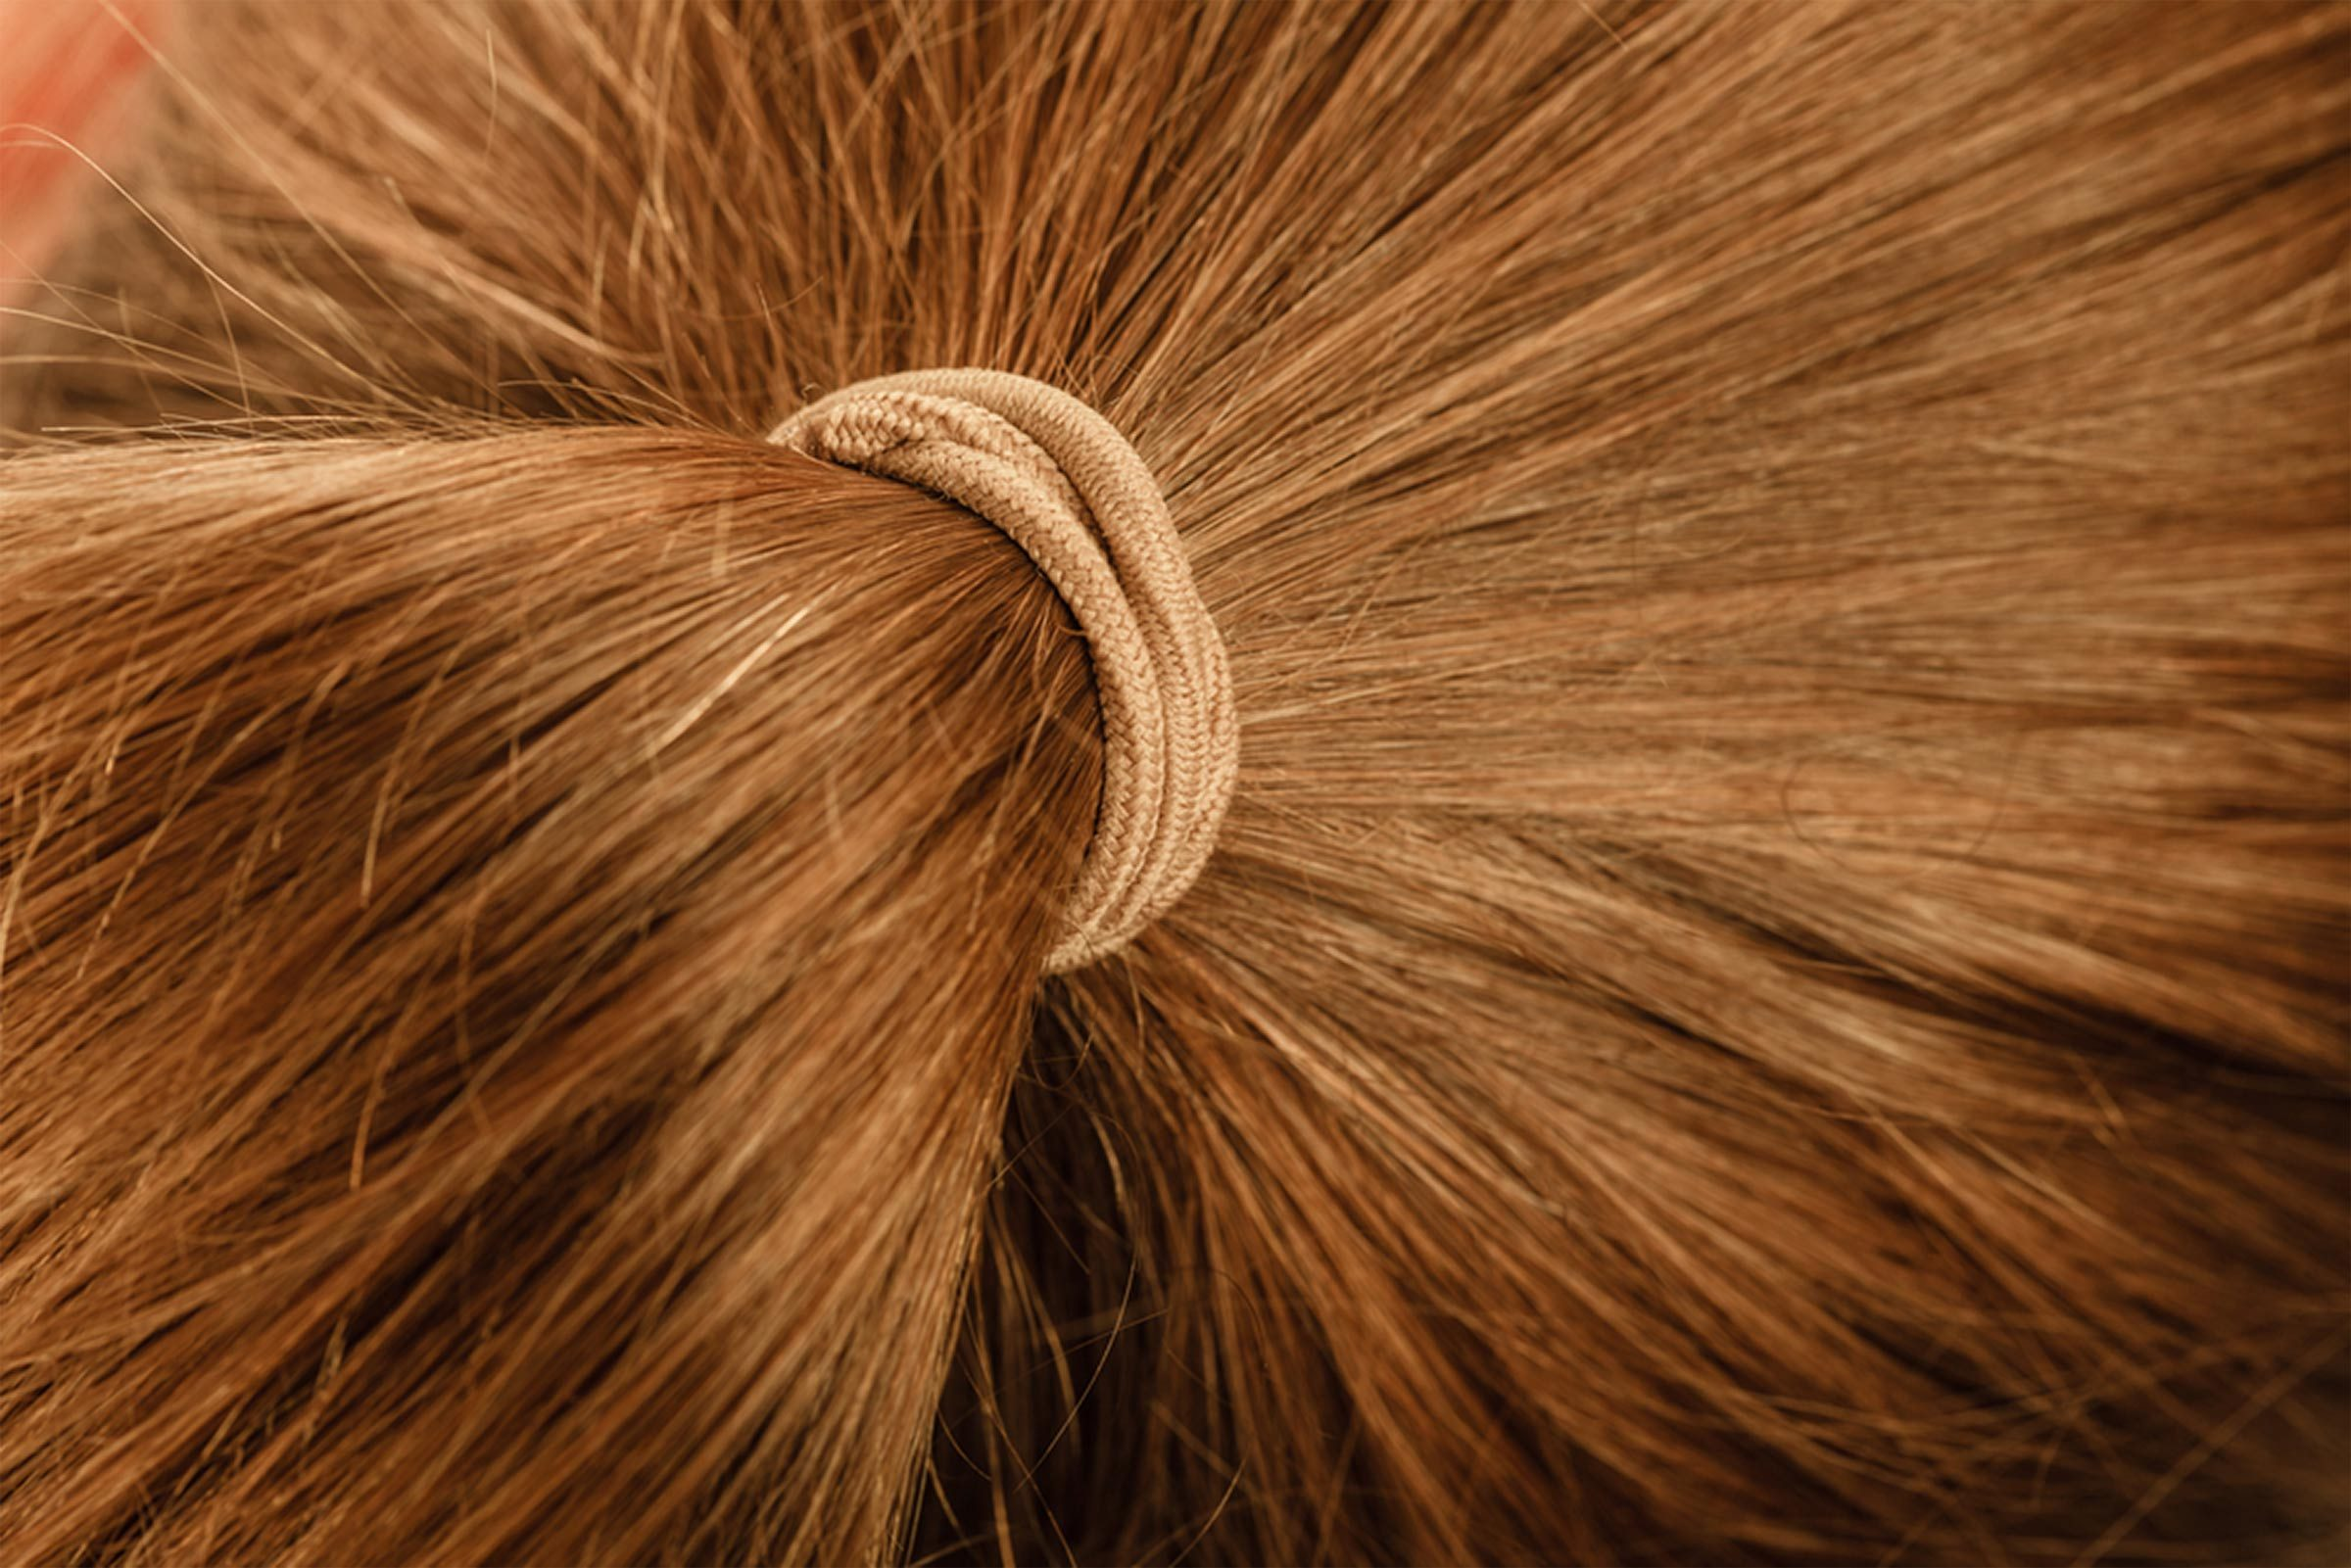 21 Reasons for Your Itchy Scalp (Besides Head Lice